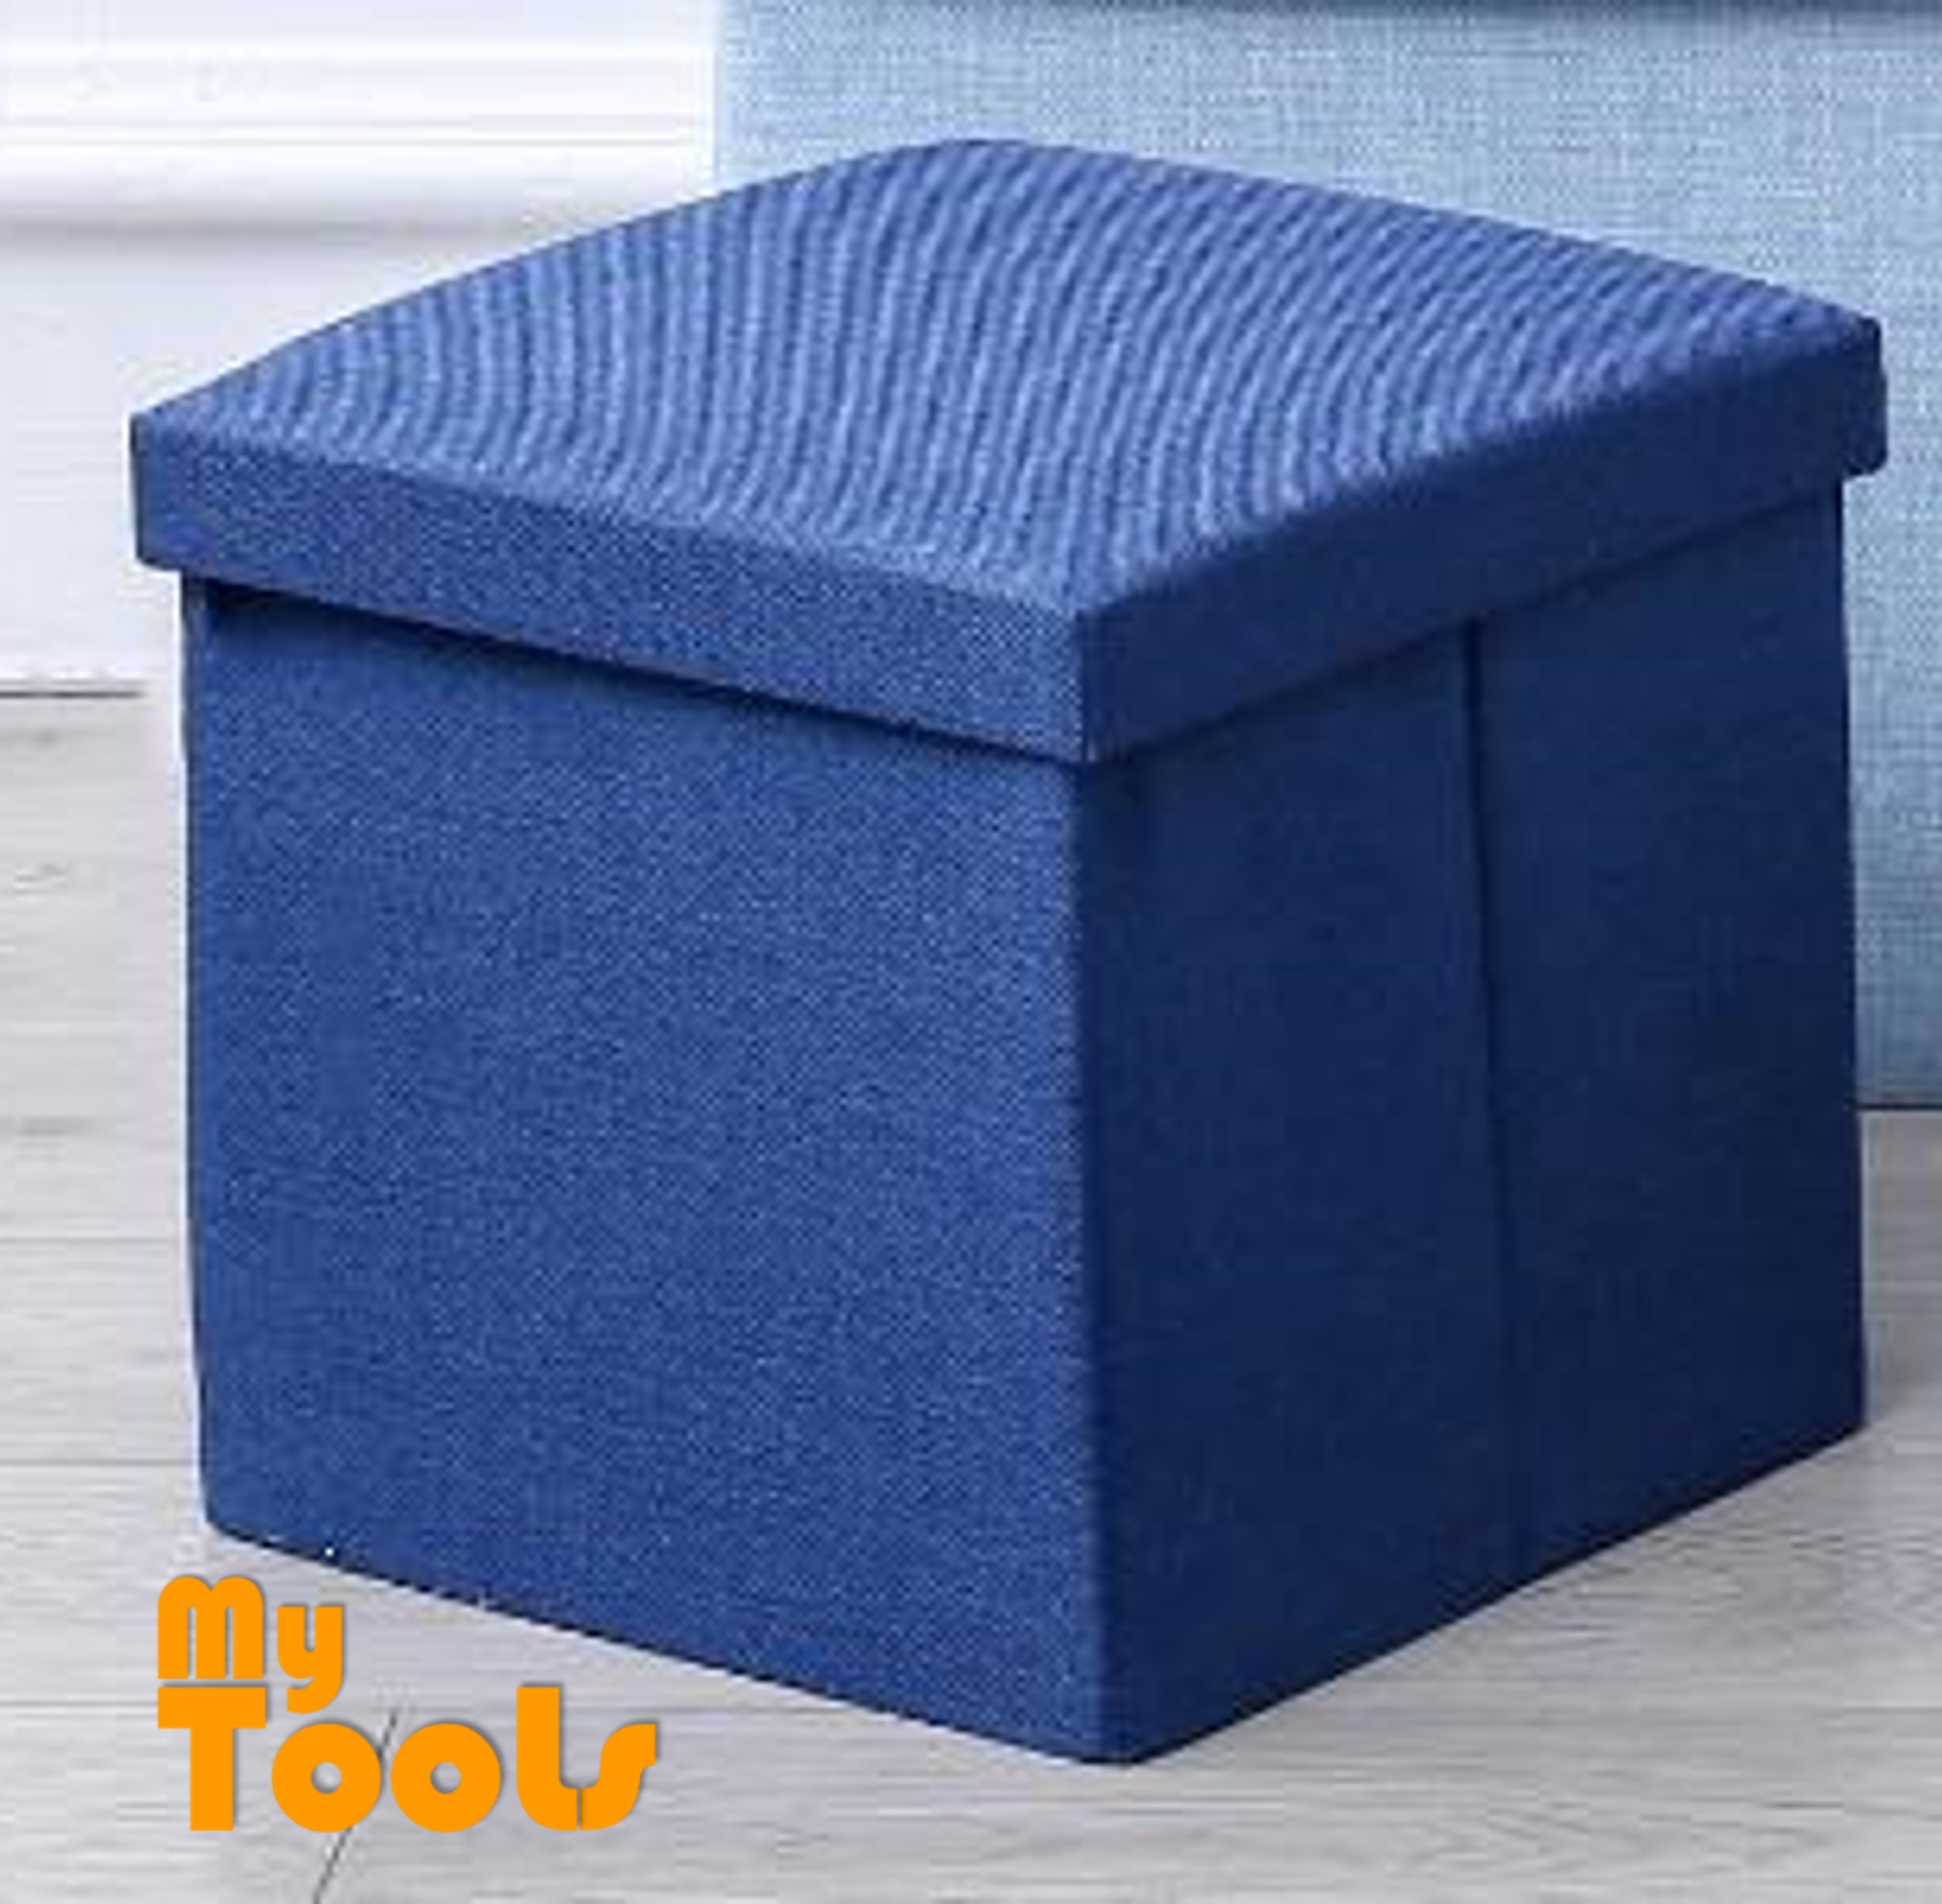 Marvelous Mytools Foldable Storage Ottoman Fabric Foot Stool Seat Footrest Folding Storage Box 30 X 30 X 30 Forskolin Free Trial Chair Design Images Forskolin Free Trialorg